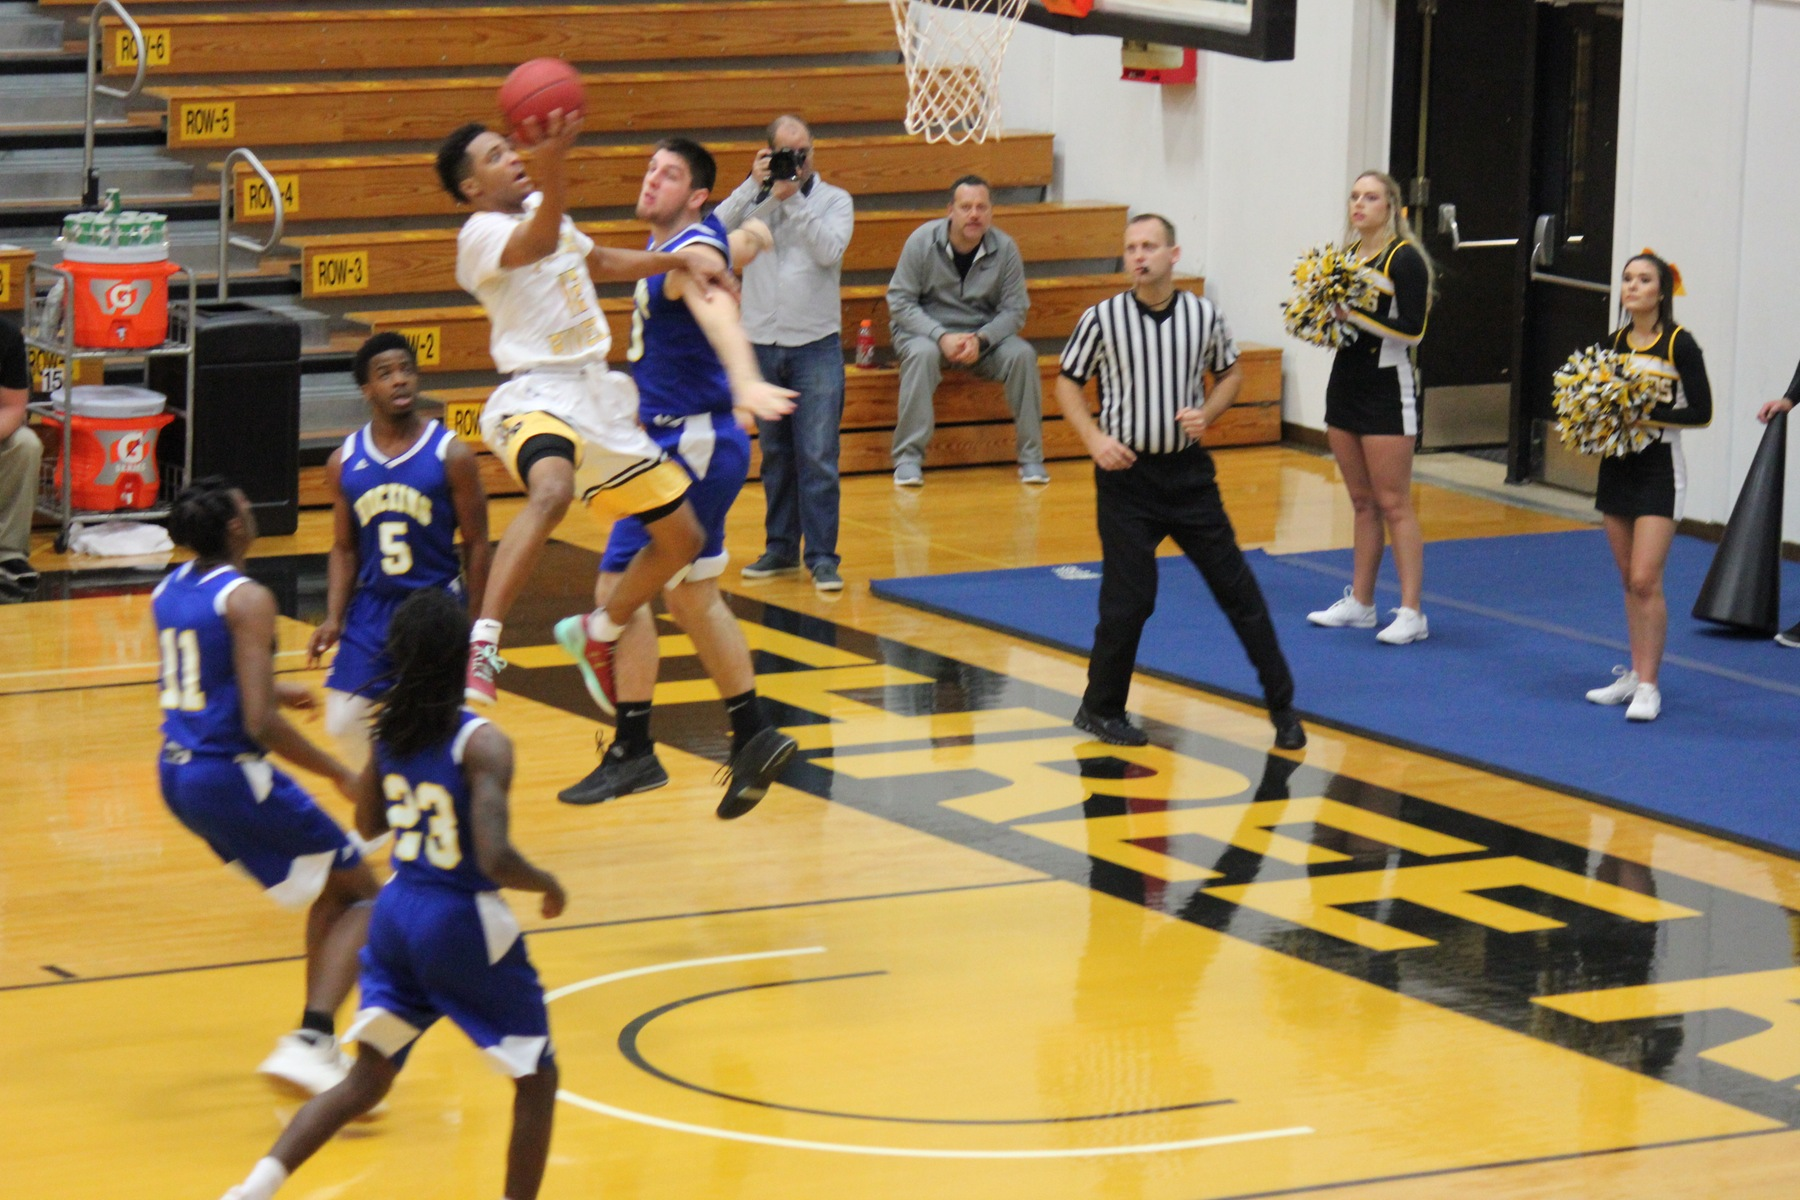 Raiders roll with 3-point shooting